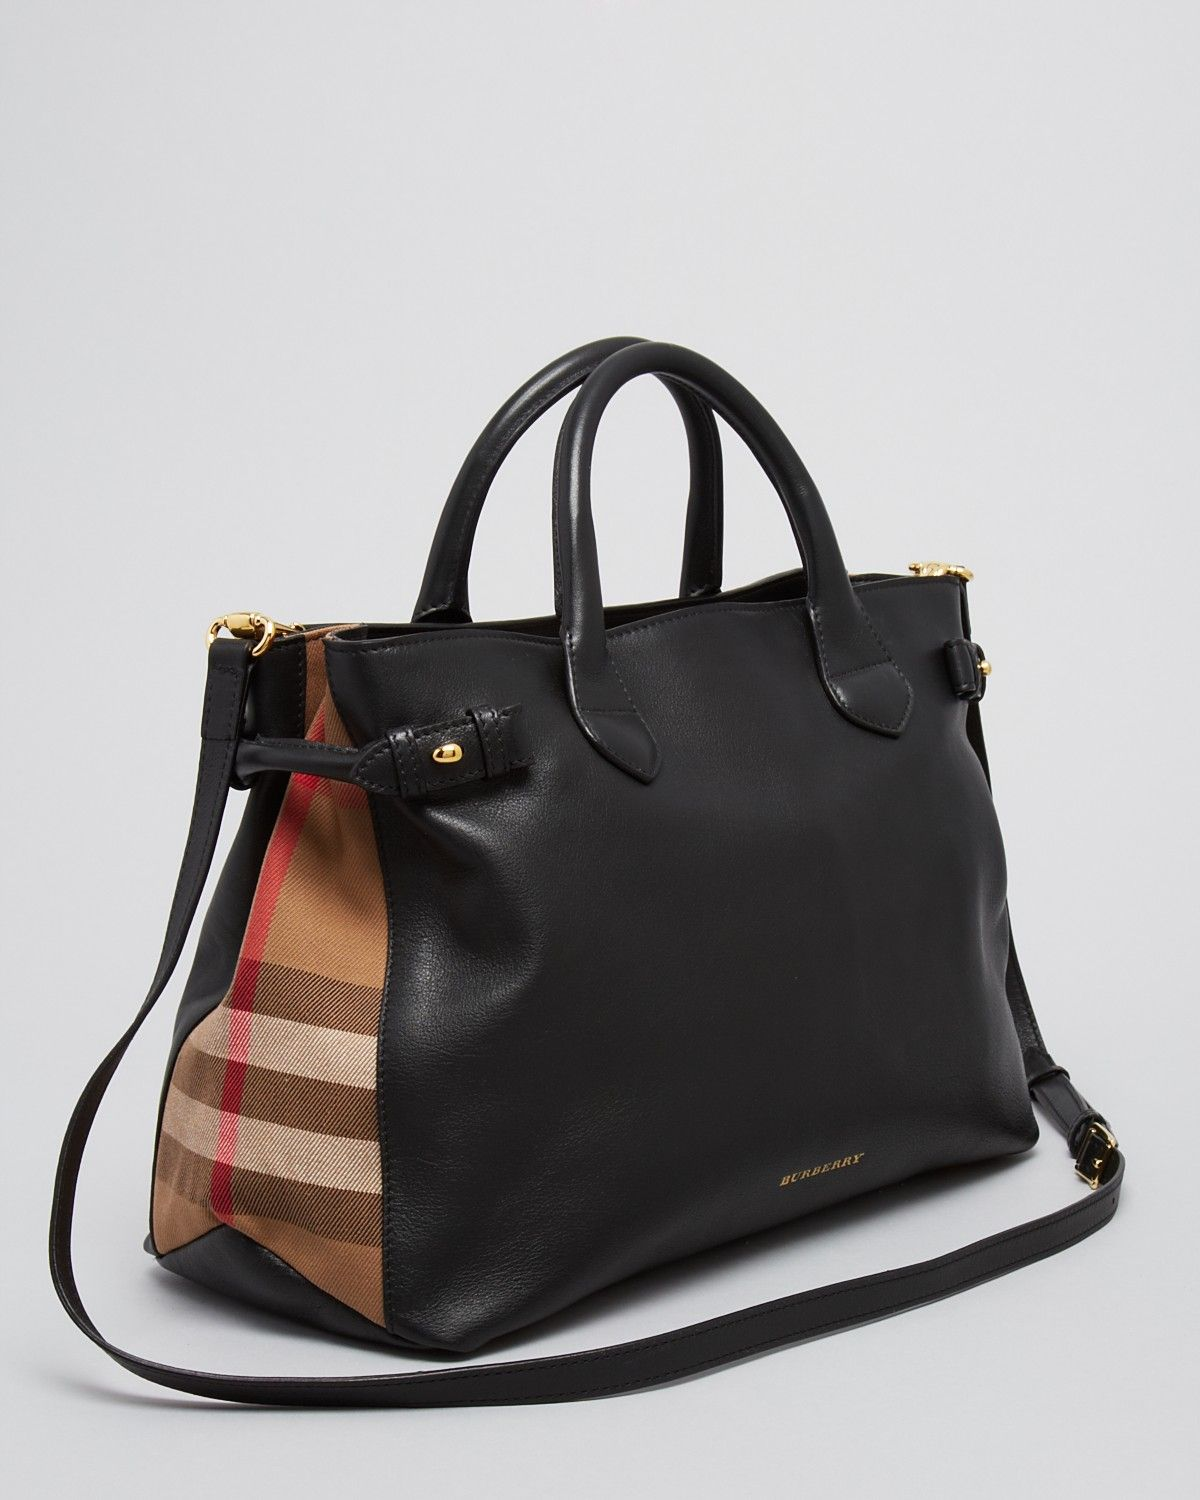 51f28ea9a3 Burberry Tote - House Check Sartorial Medium Banner | Bags ...